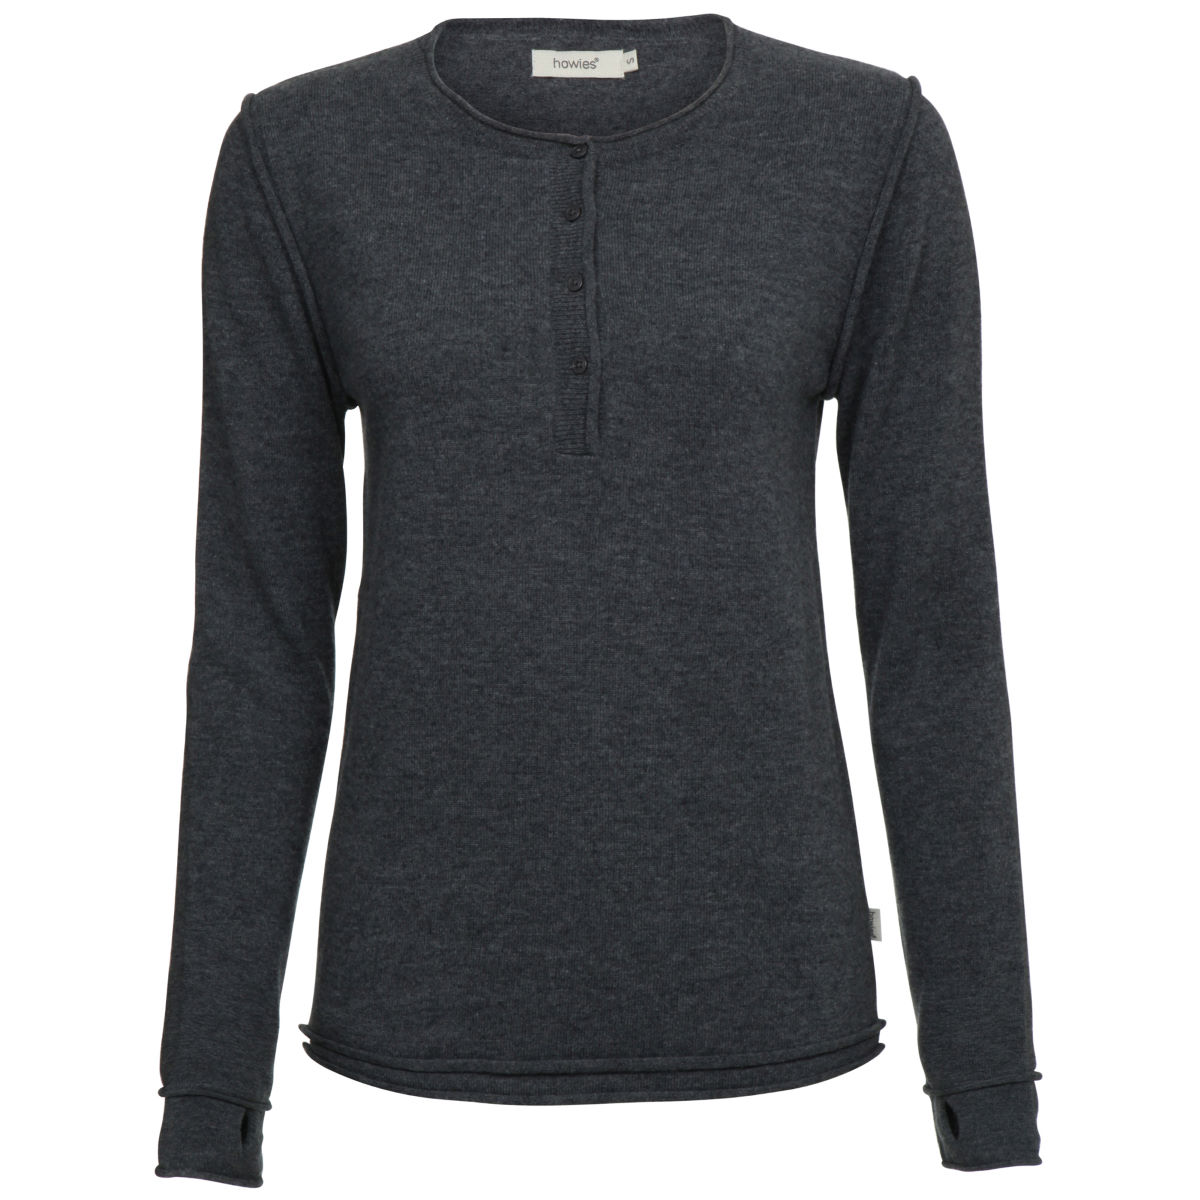 Pull Femme howies Kyoko (coutures brutes, style Henley, manches longues)